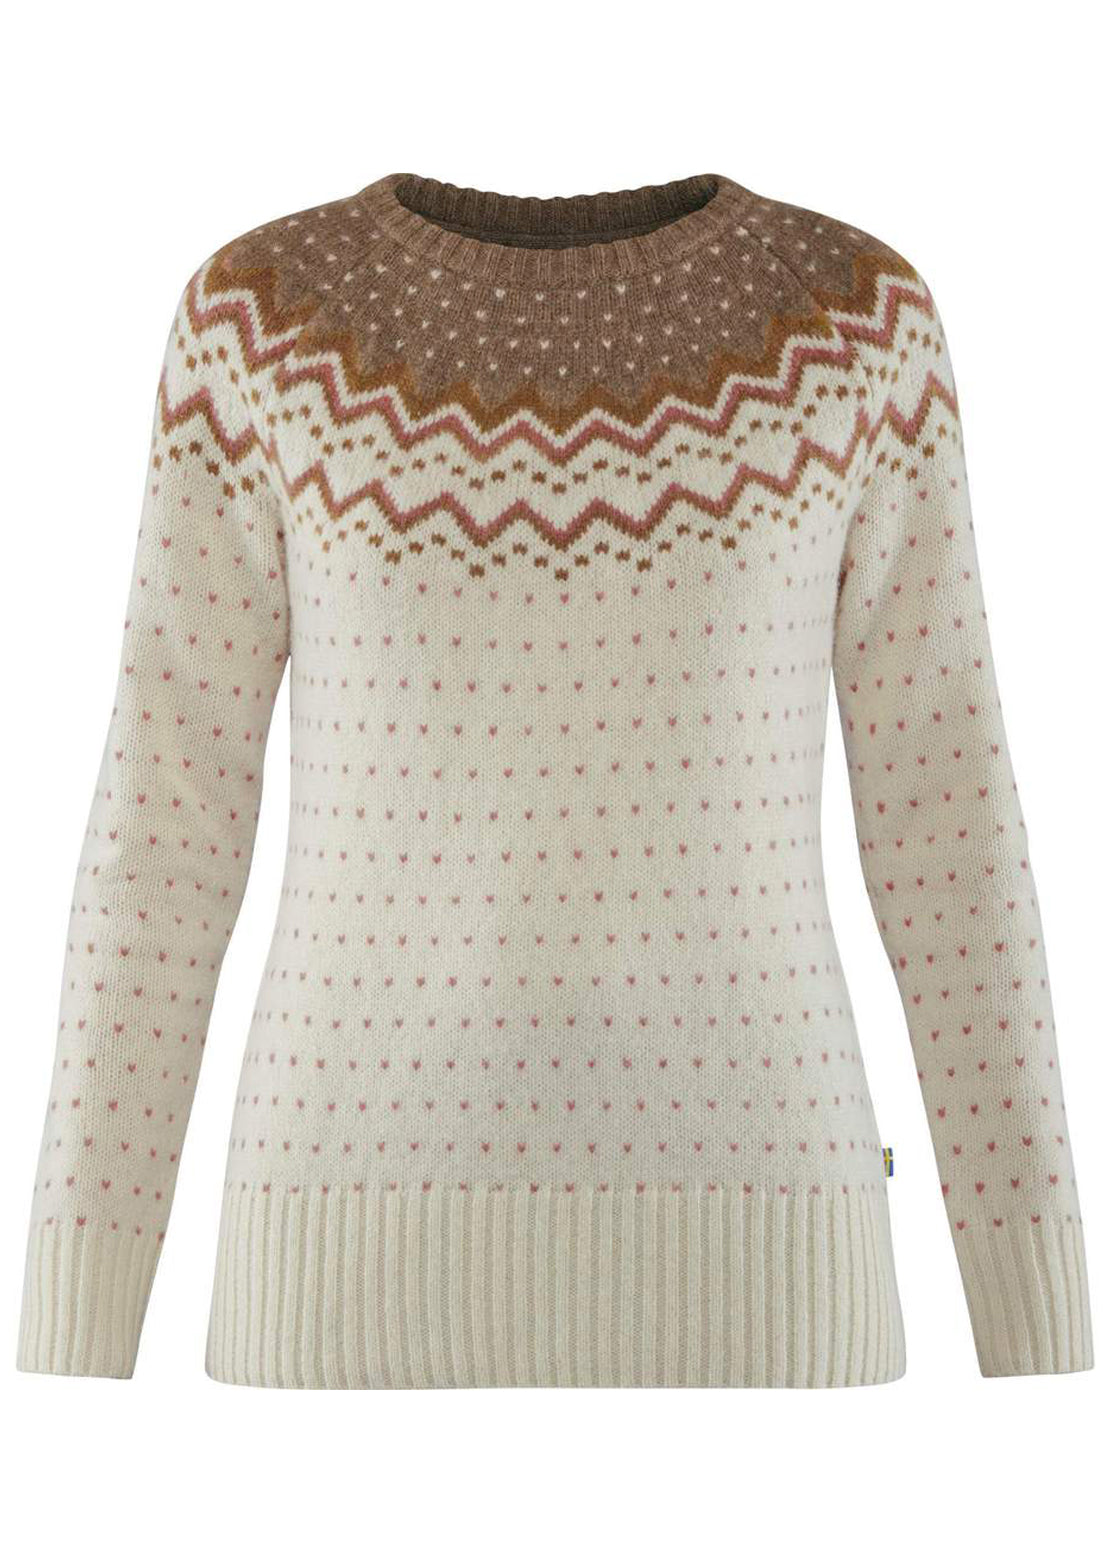 Fjallraven Women's Ovik Knit Sweater Terracotta Pink